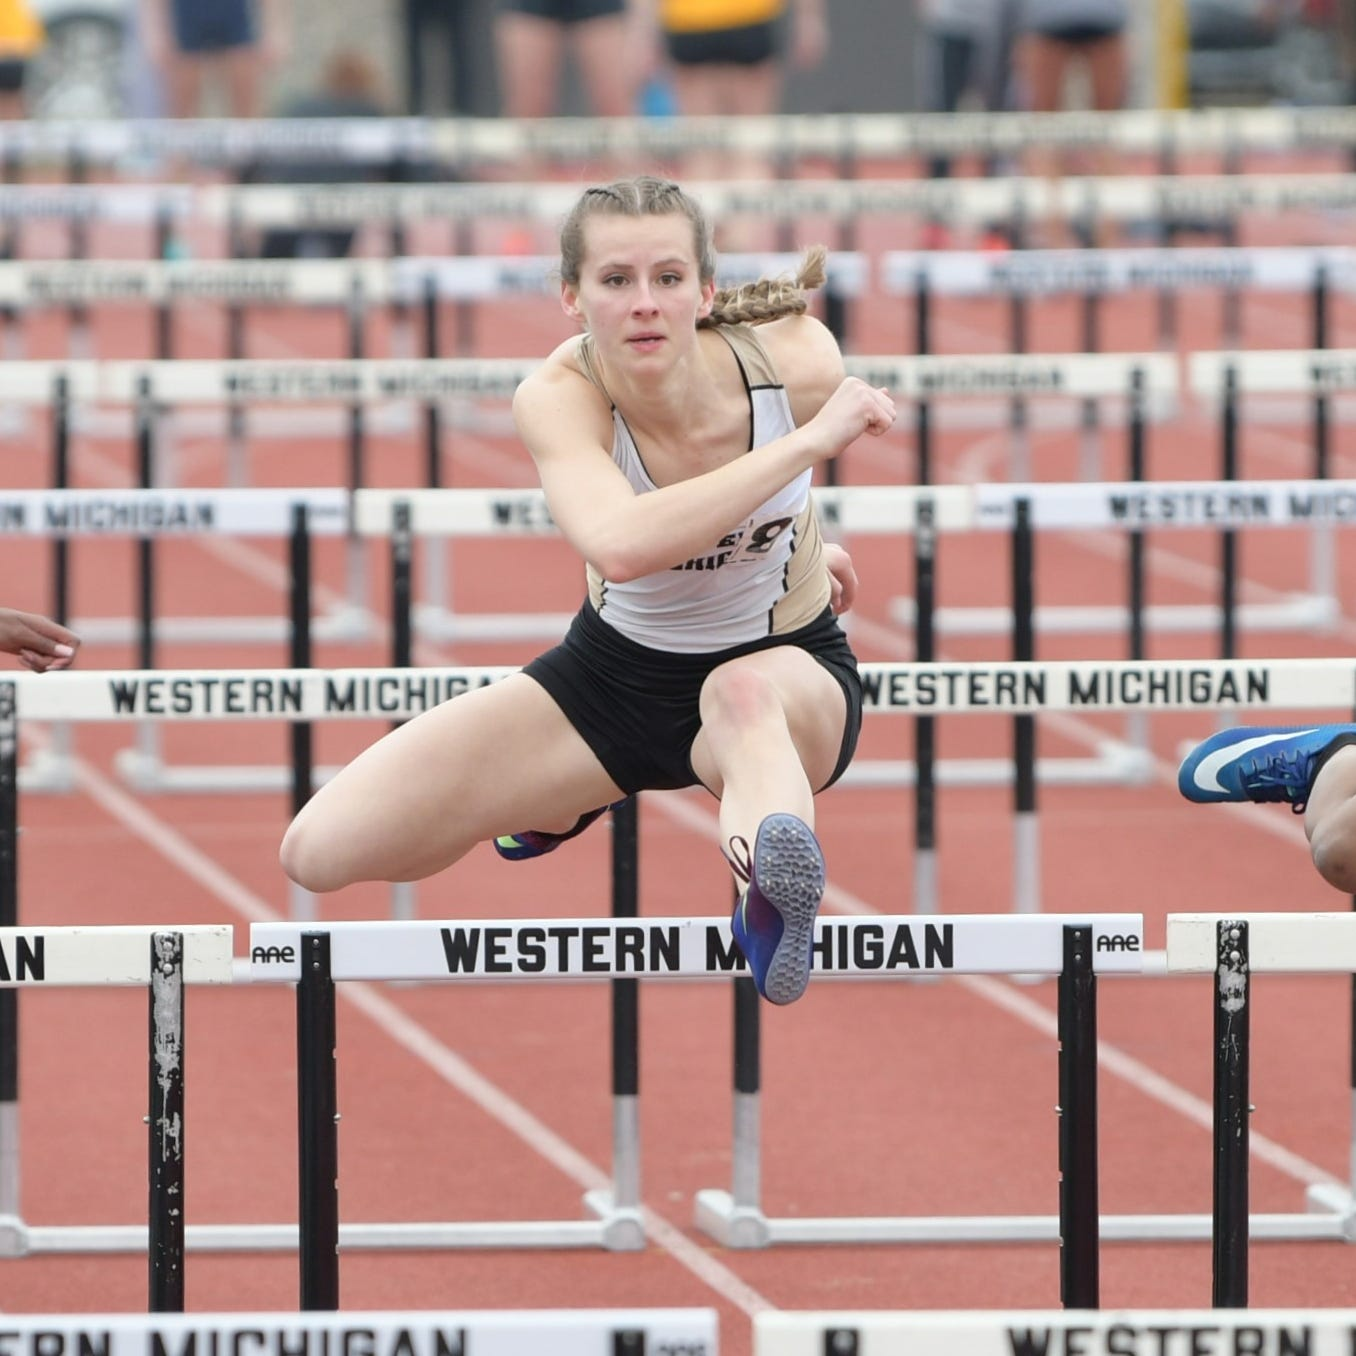 Brighton's Erin Dowd repeats as MAC champ at Western Michigan in 'terrifying' hurdles race